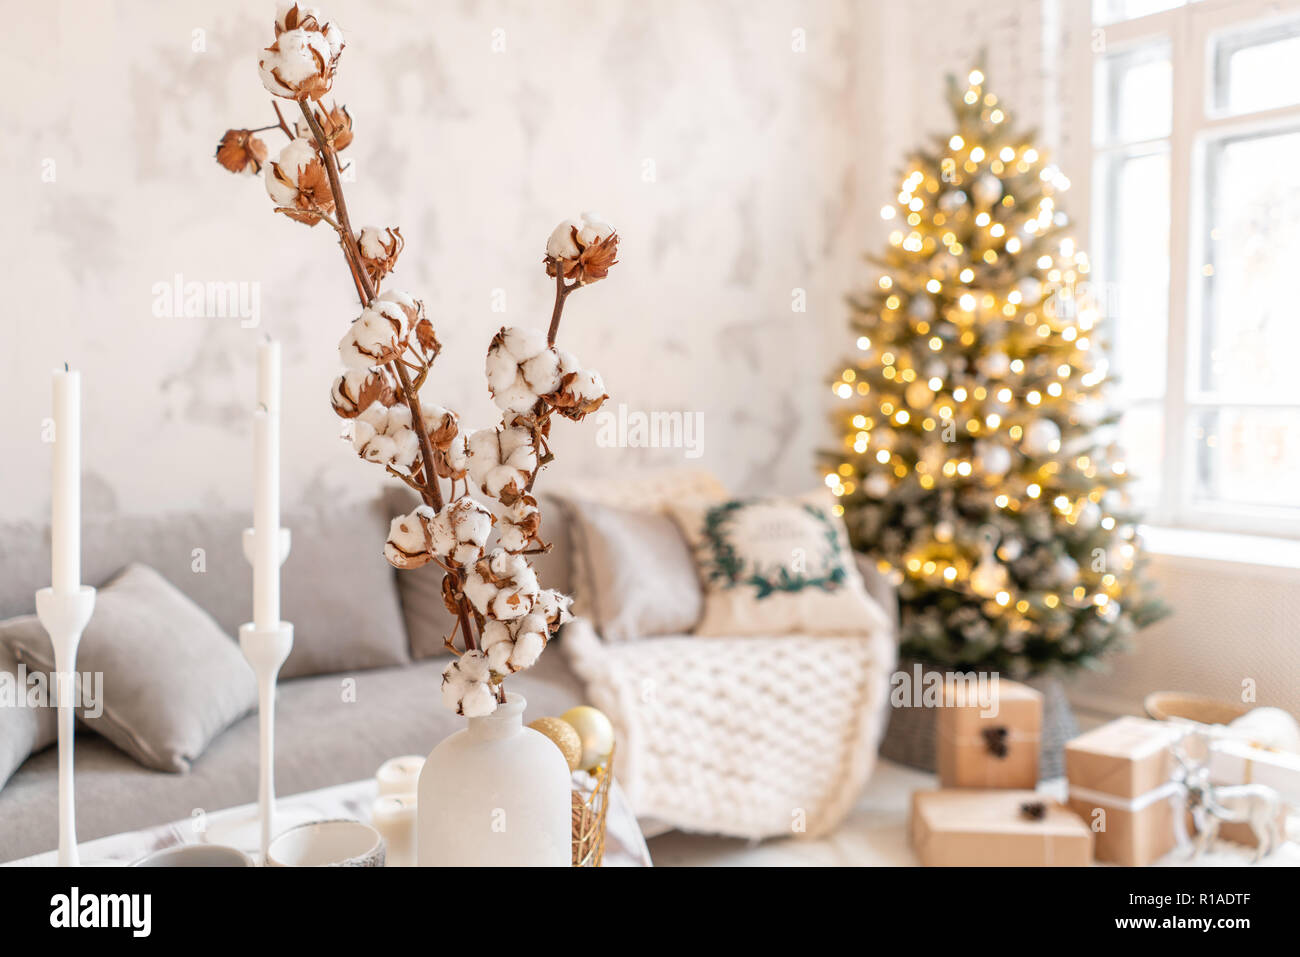 Vase With Cotton Branches Light Living Room With Christmas Tree Comfortable Sofa High Large Windows Stock Photo Alamy